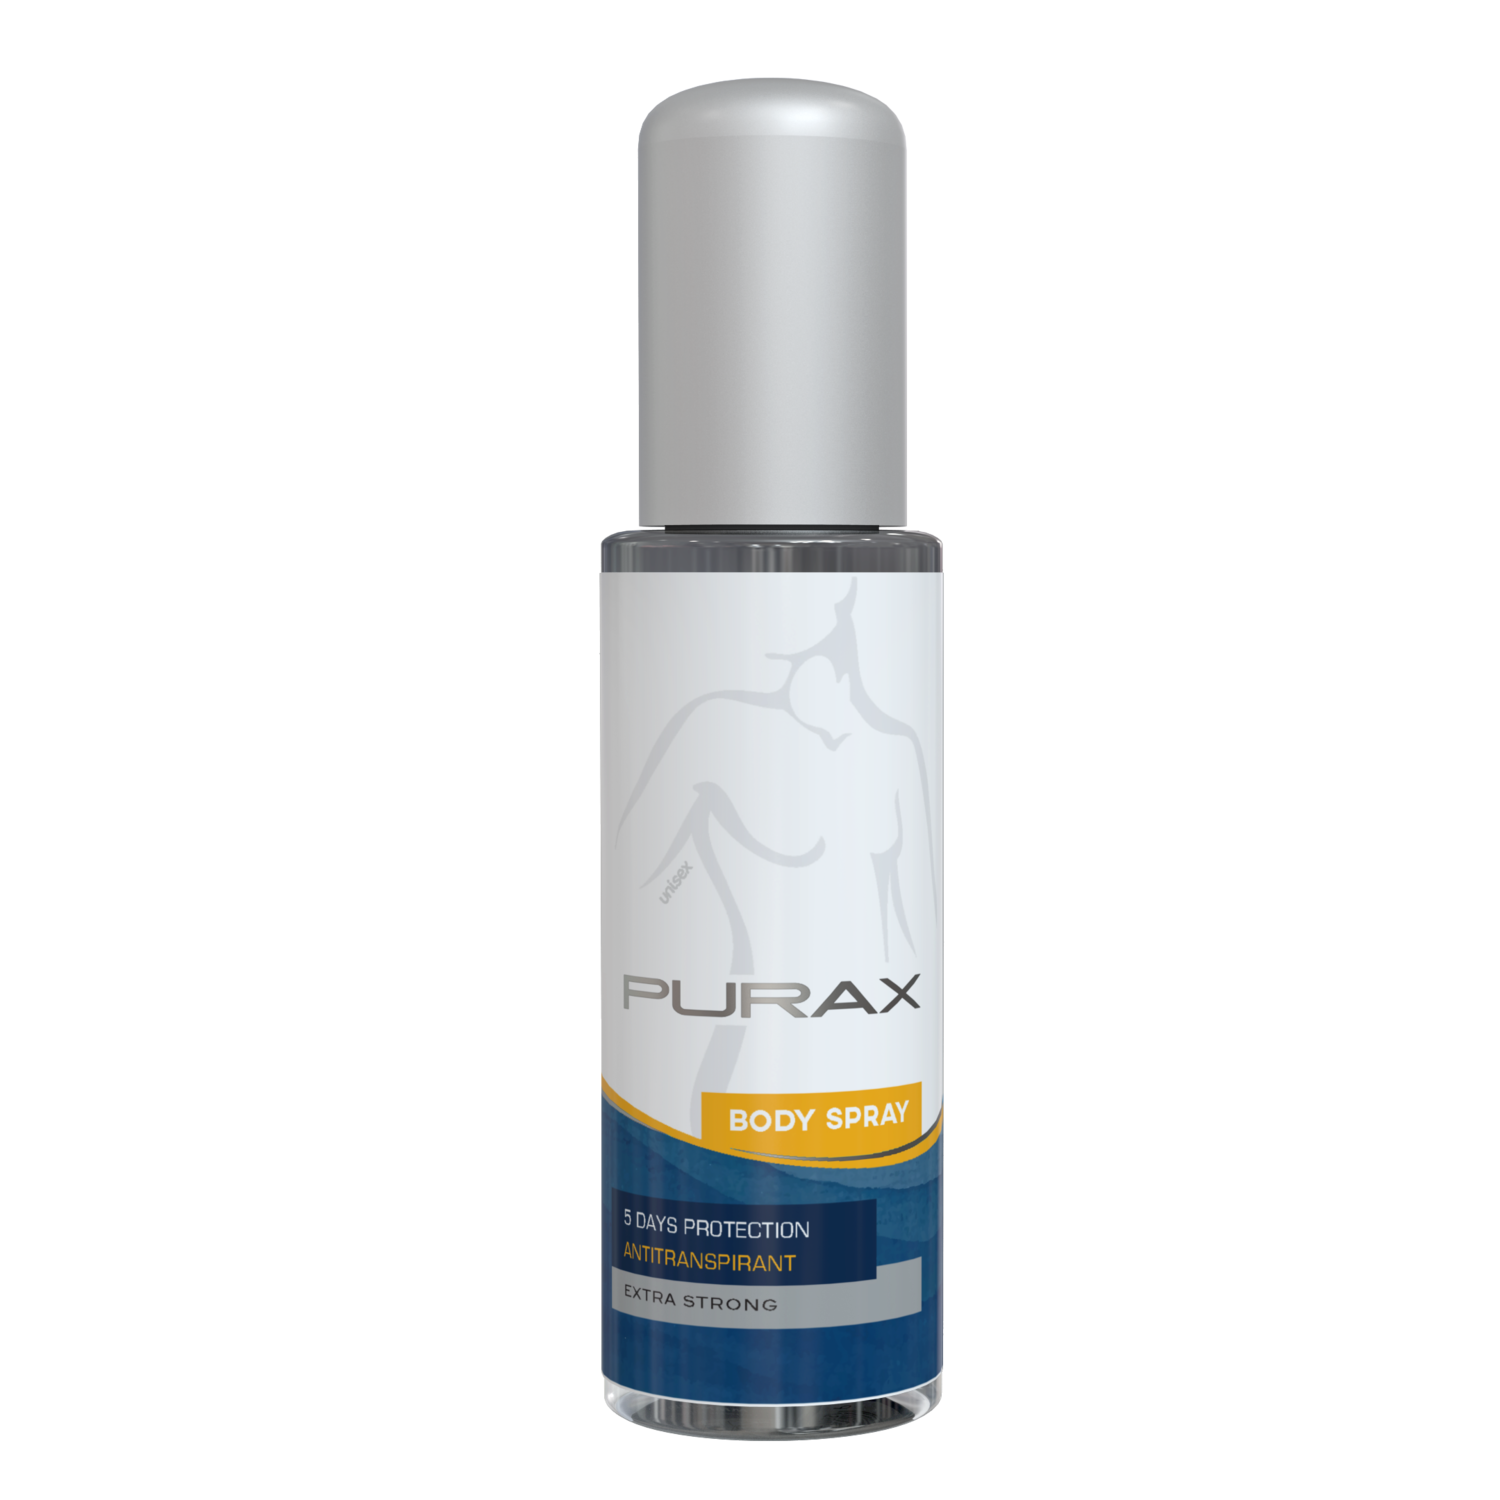 PURAX Antiperspirant Body Spray - extra strong 50ml